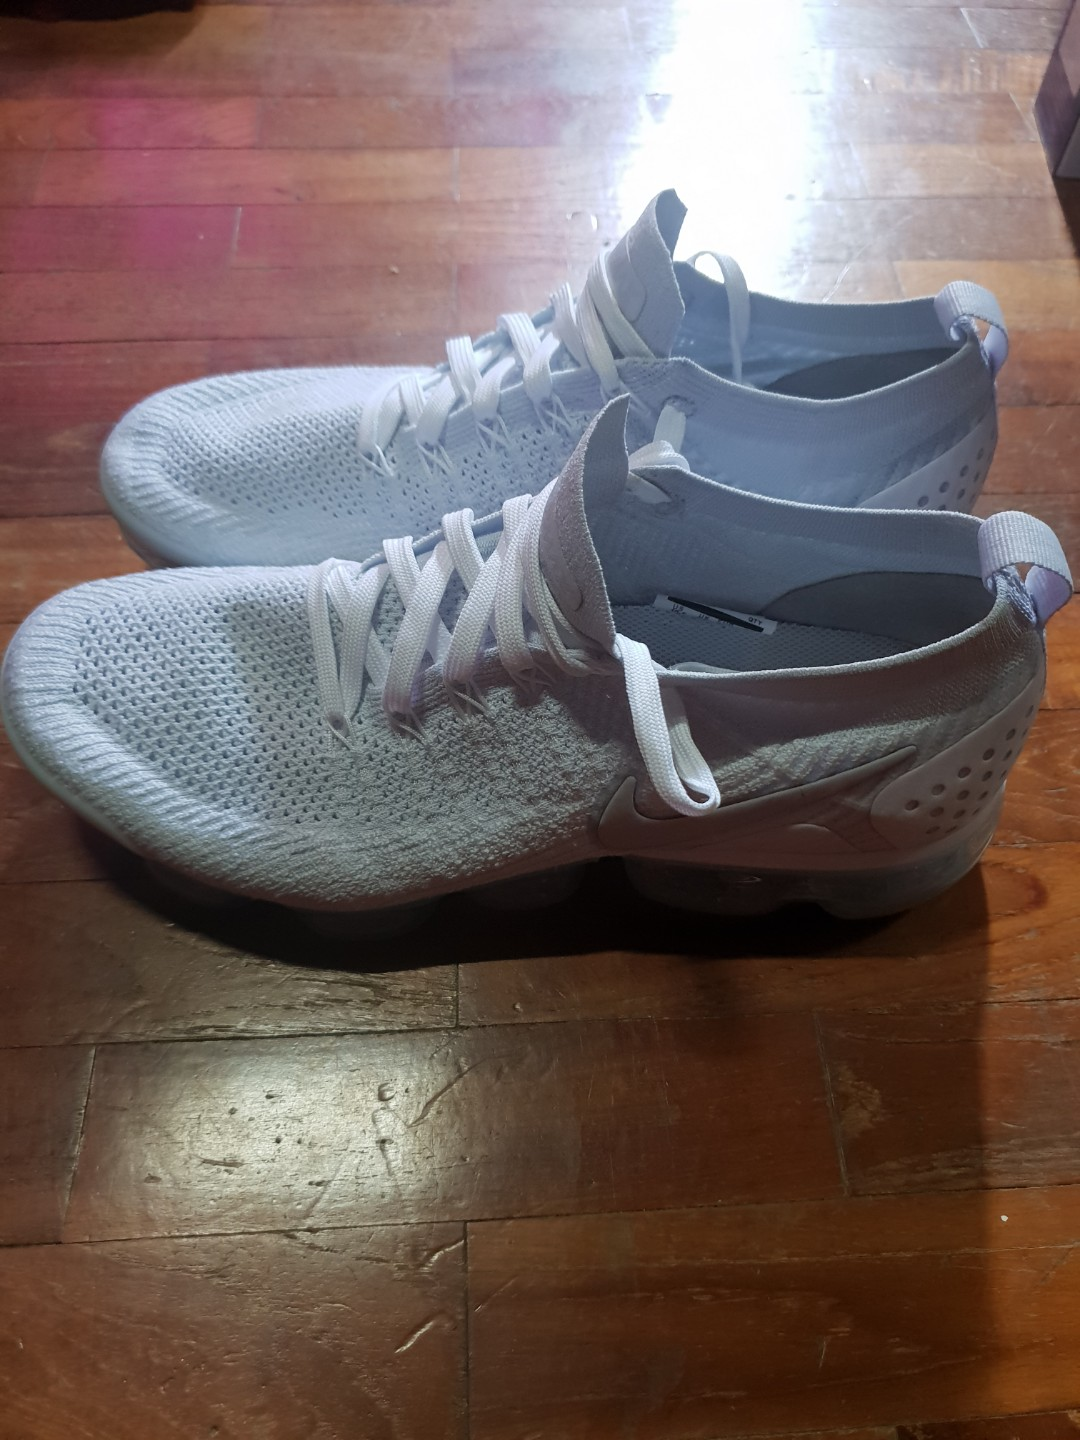 bd306743be vapormax flyknit white 2, Men's Fashion, Footwear, Others on Carousell